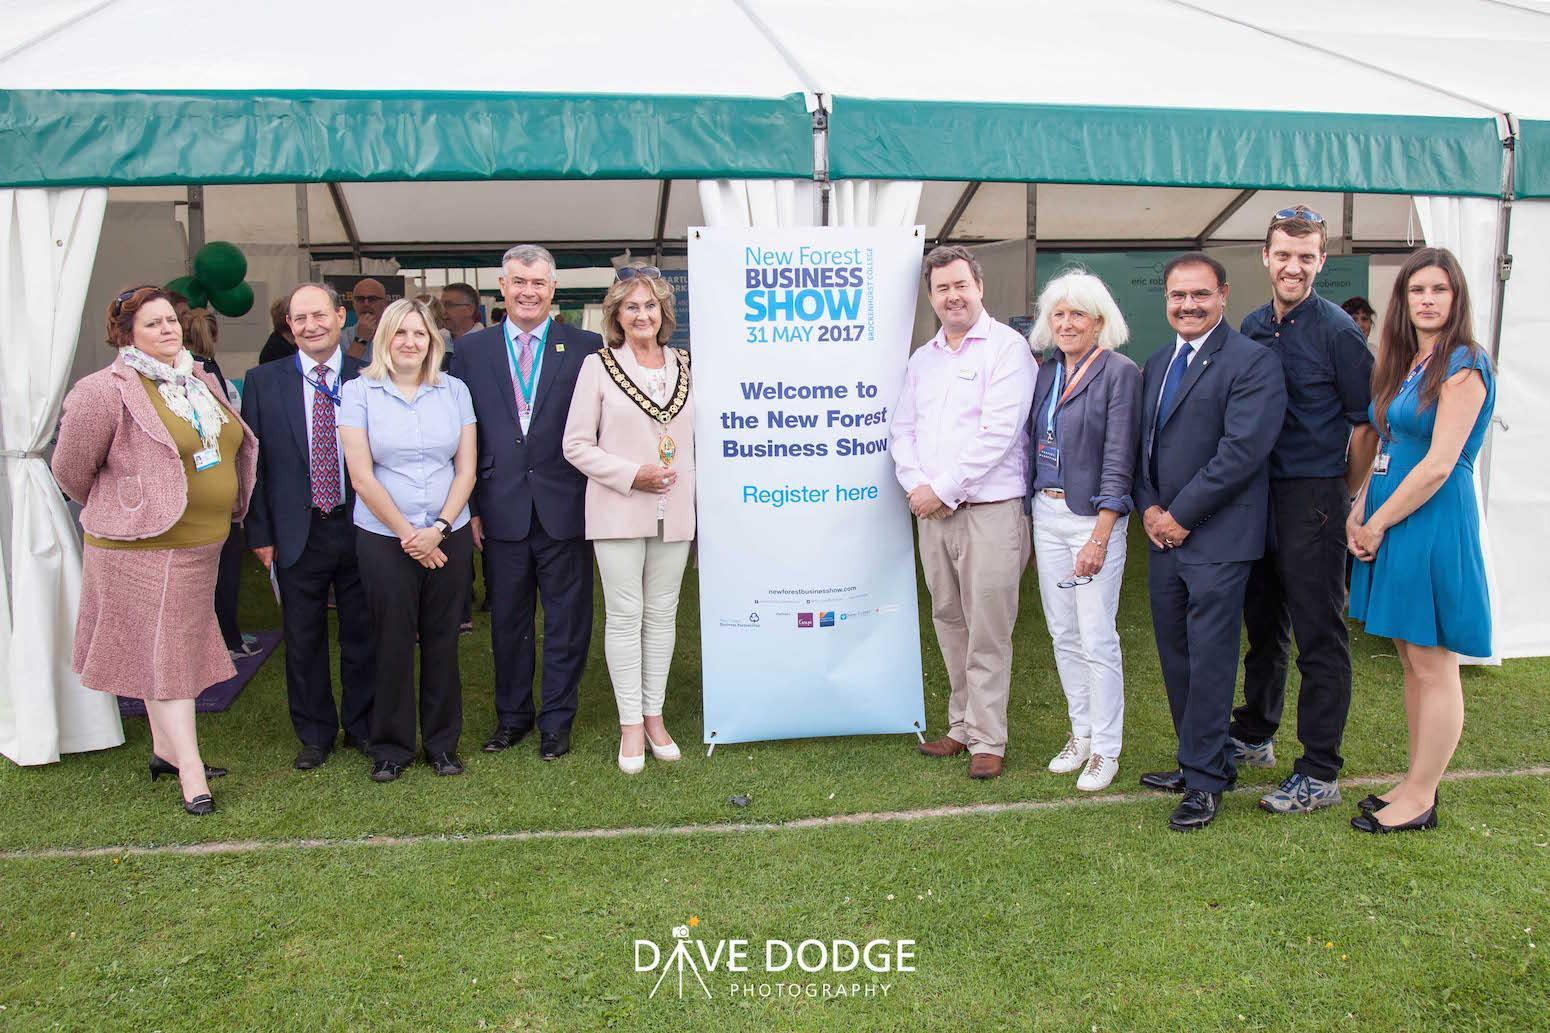 New Forest Business Show team at the opening